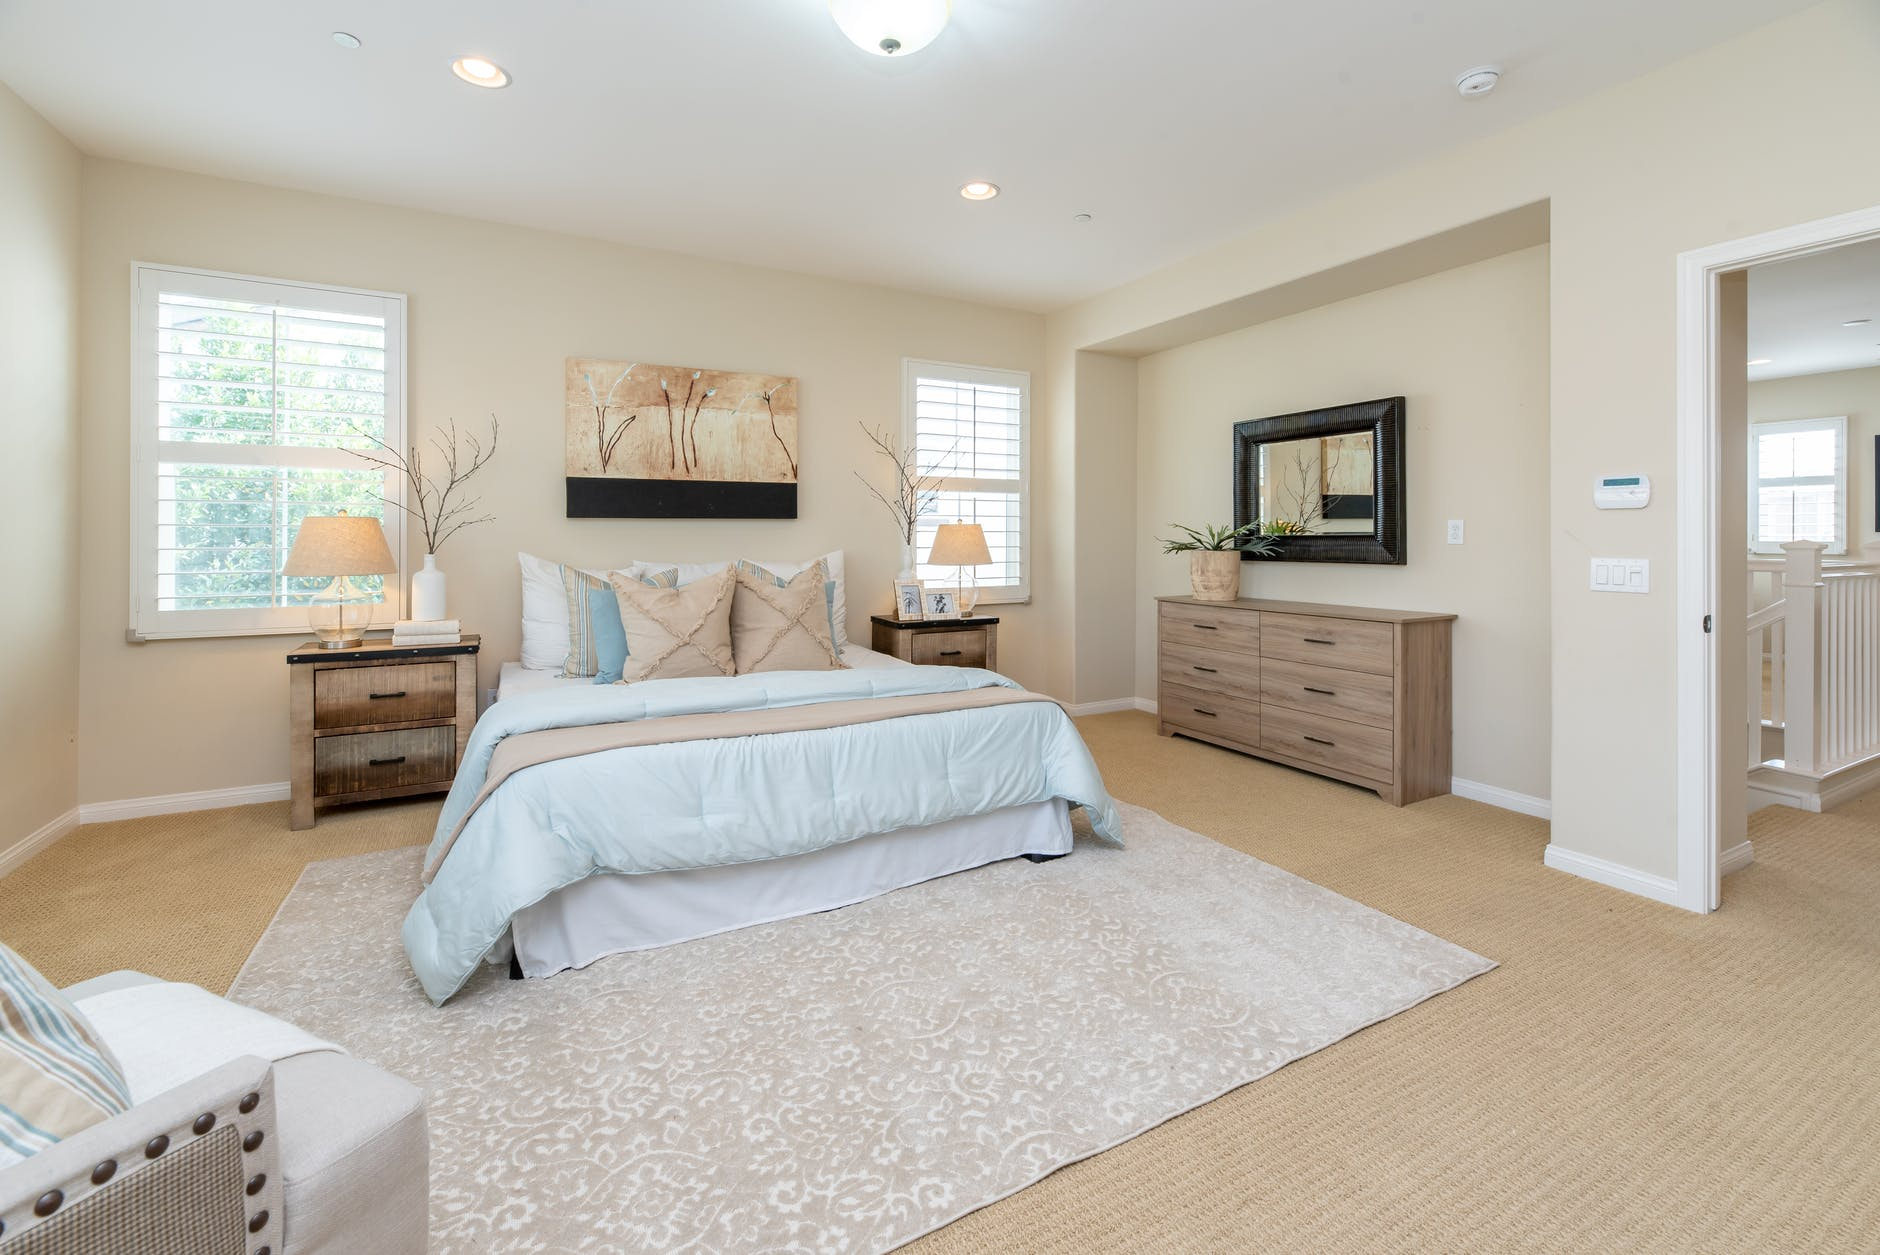 How To Reduce Clutter In Your Master Bedroom